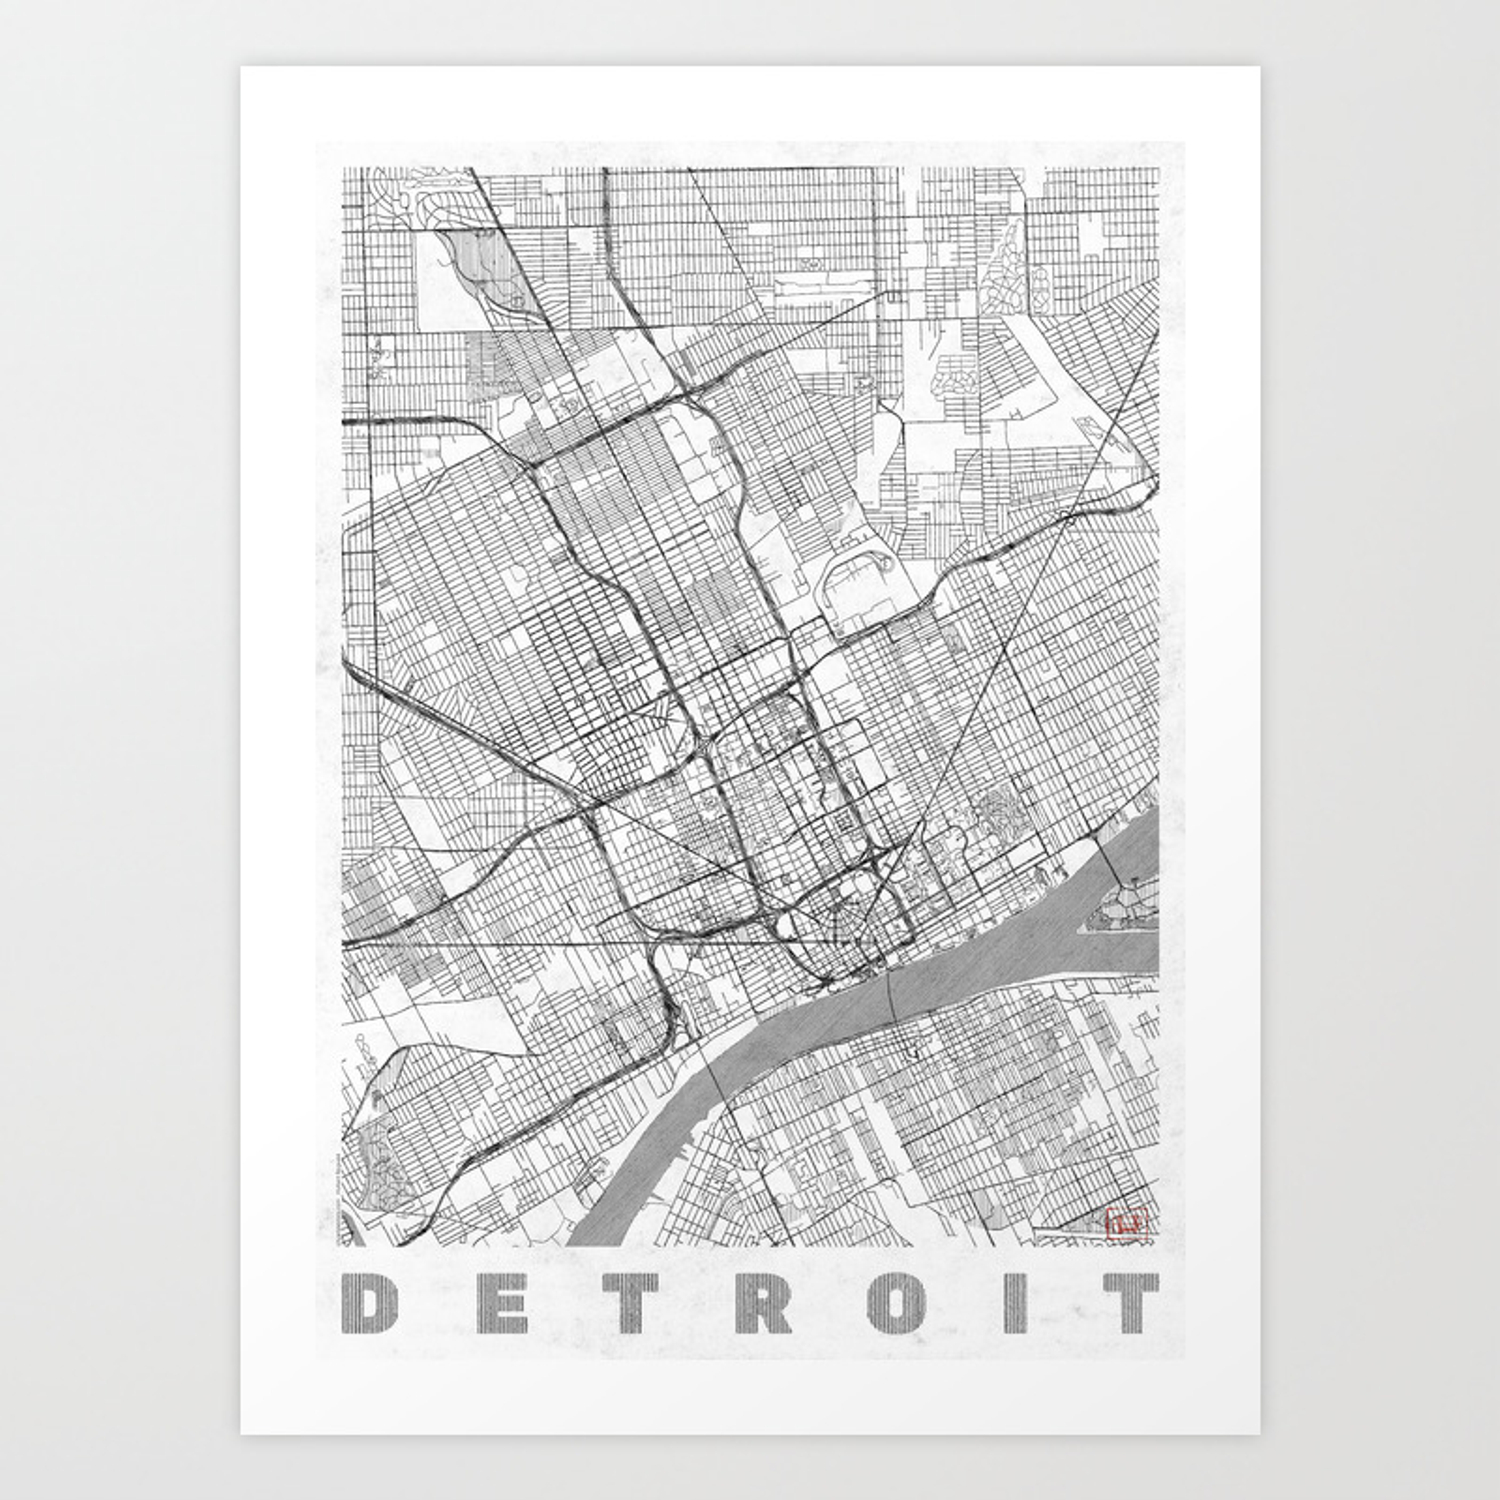 Detroit Map Line Art Print on st louis on map, chicago map, michigan map, great lakes map, baltimore map, new york map, quebec map, duluth map, cincinnati map, pittsburgh map, usa map, henry ford hospital map, royal oak map, atlanta map, toronto map, memphis map, las vegas map, united states map, compton map, highland park map,